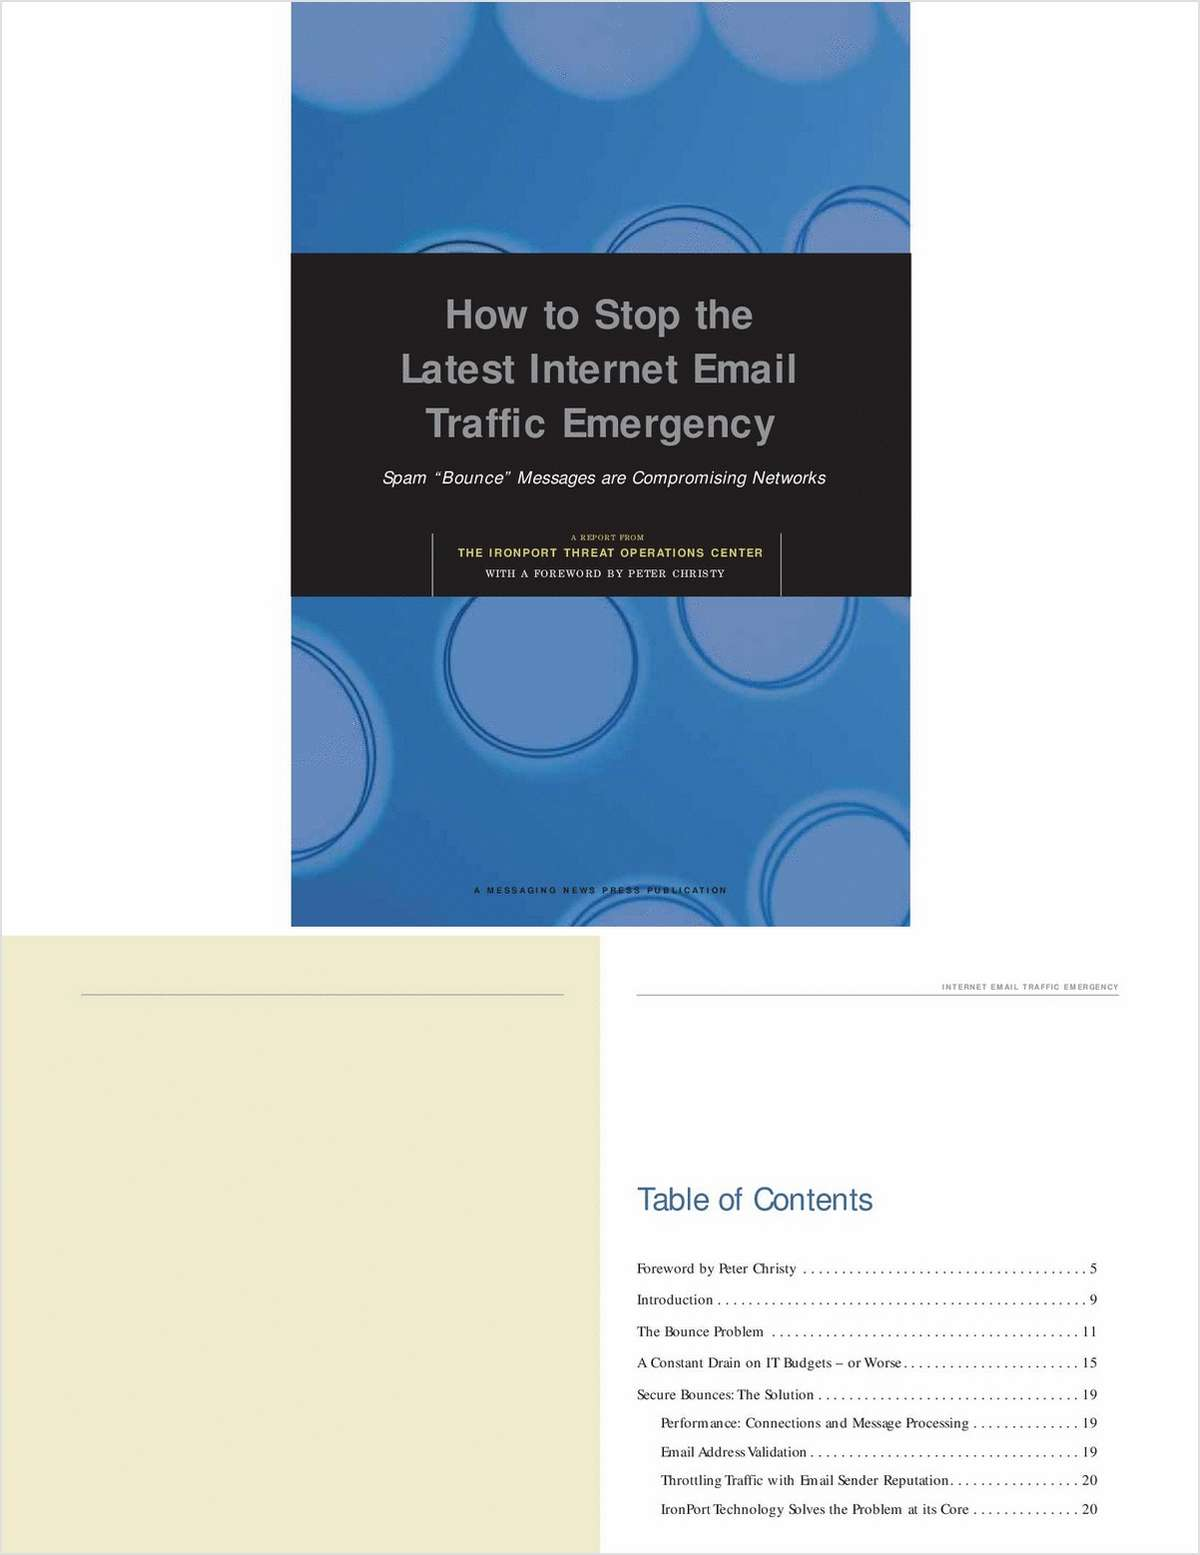 How to Stop the Latest Internet Email Traffic Emergency: Why Misdirected Bounce Messages Are Costly and Dangerous